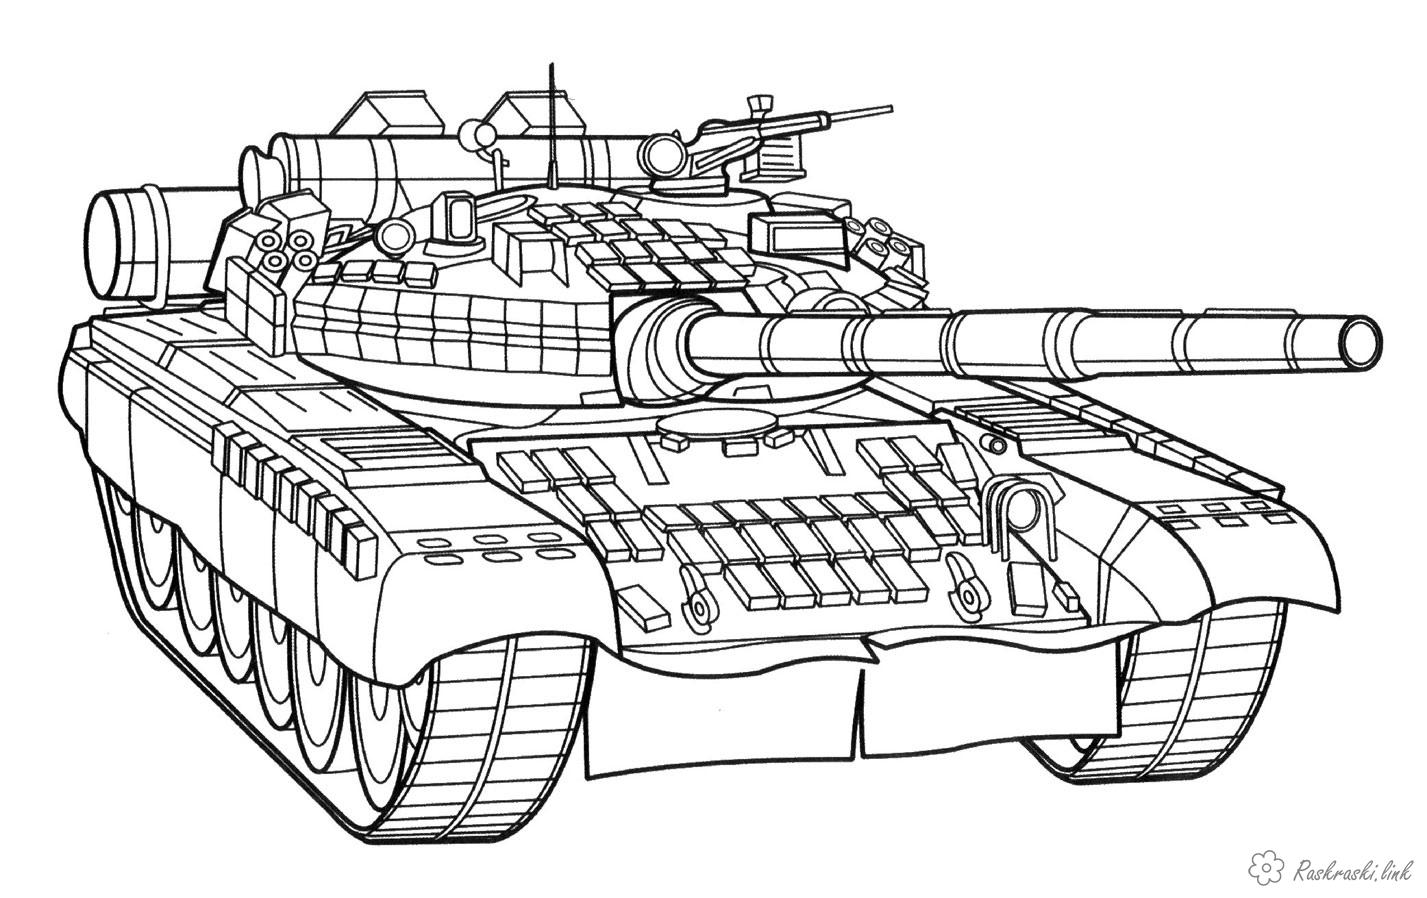 Coloring boys coloring pages modern tanks, Russian tanks, guns Rosii